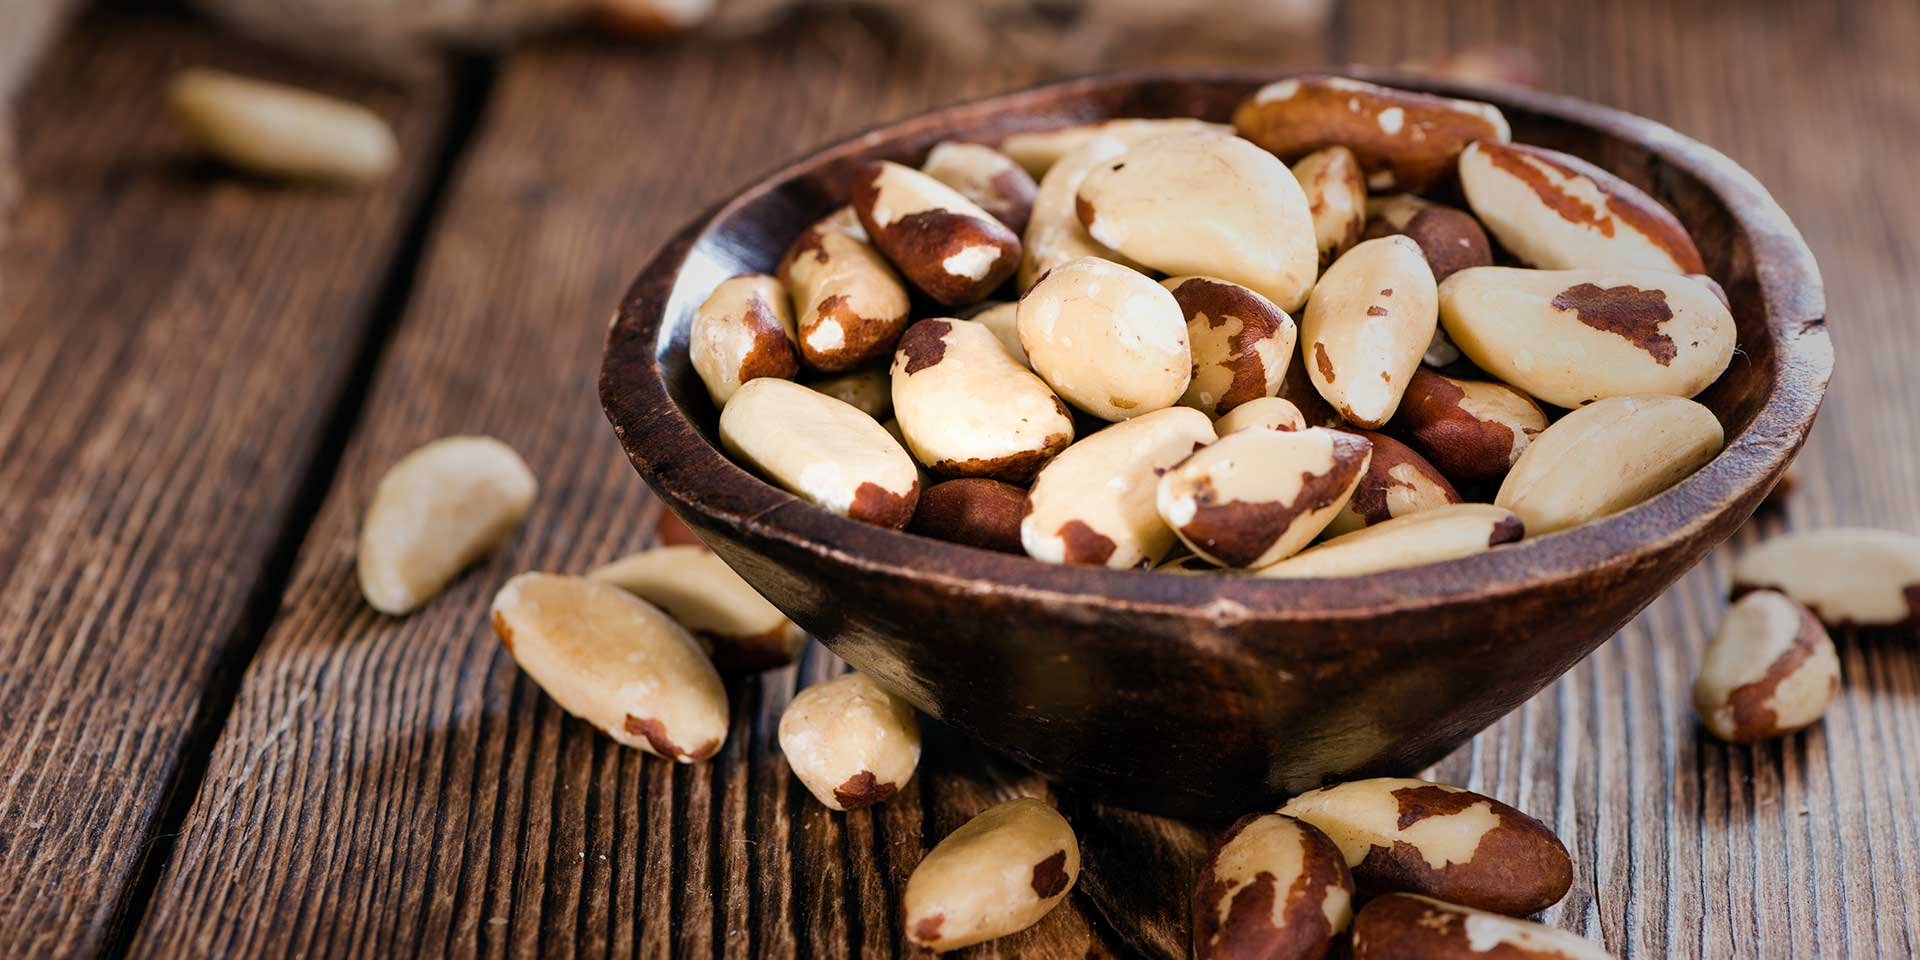 brazil-nuts-testosterone-nuts-bowl-2.jpg